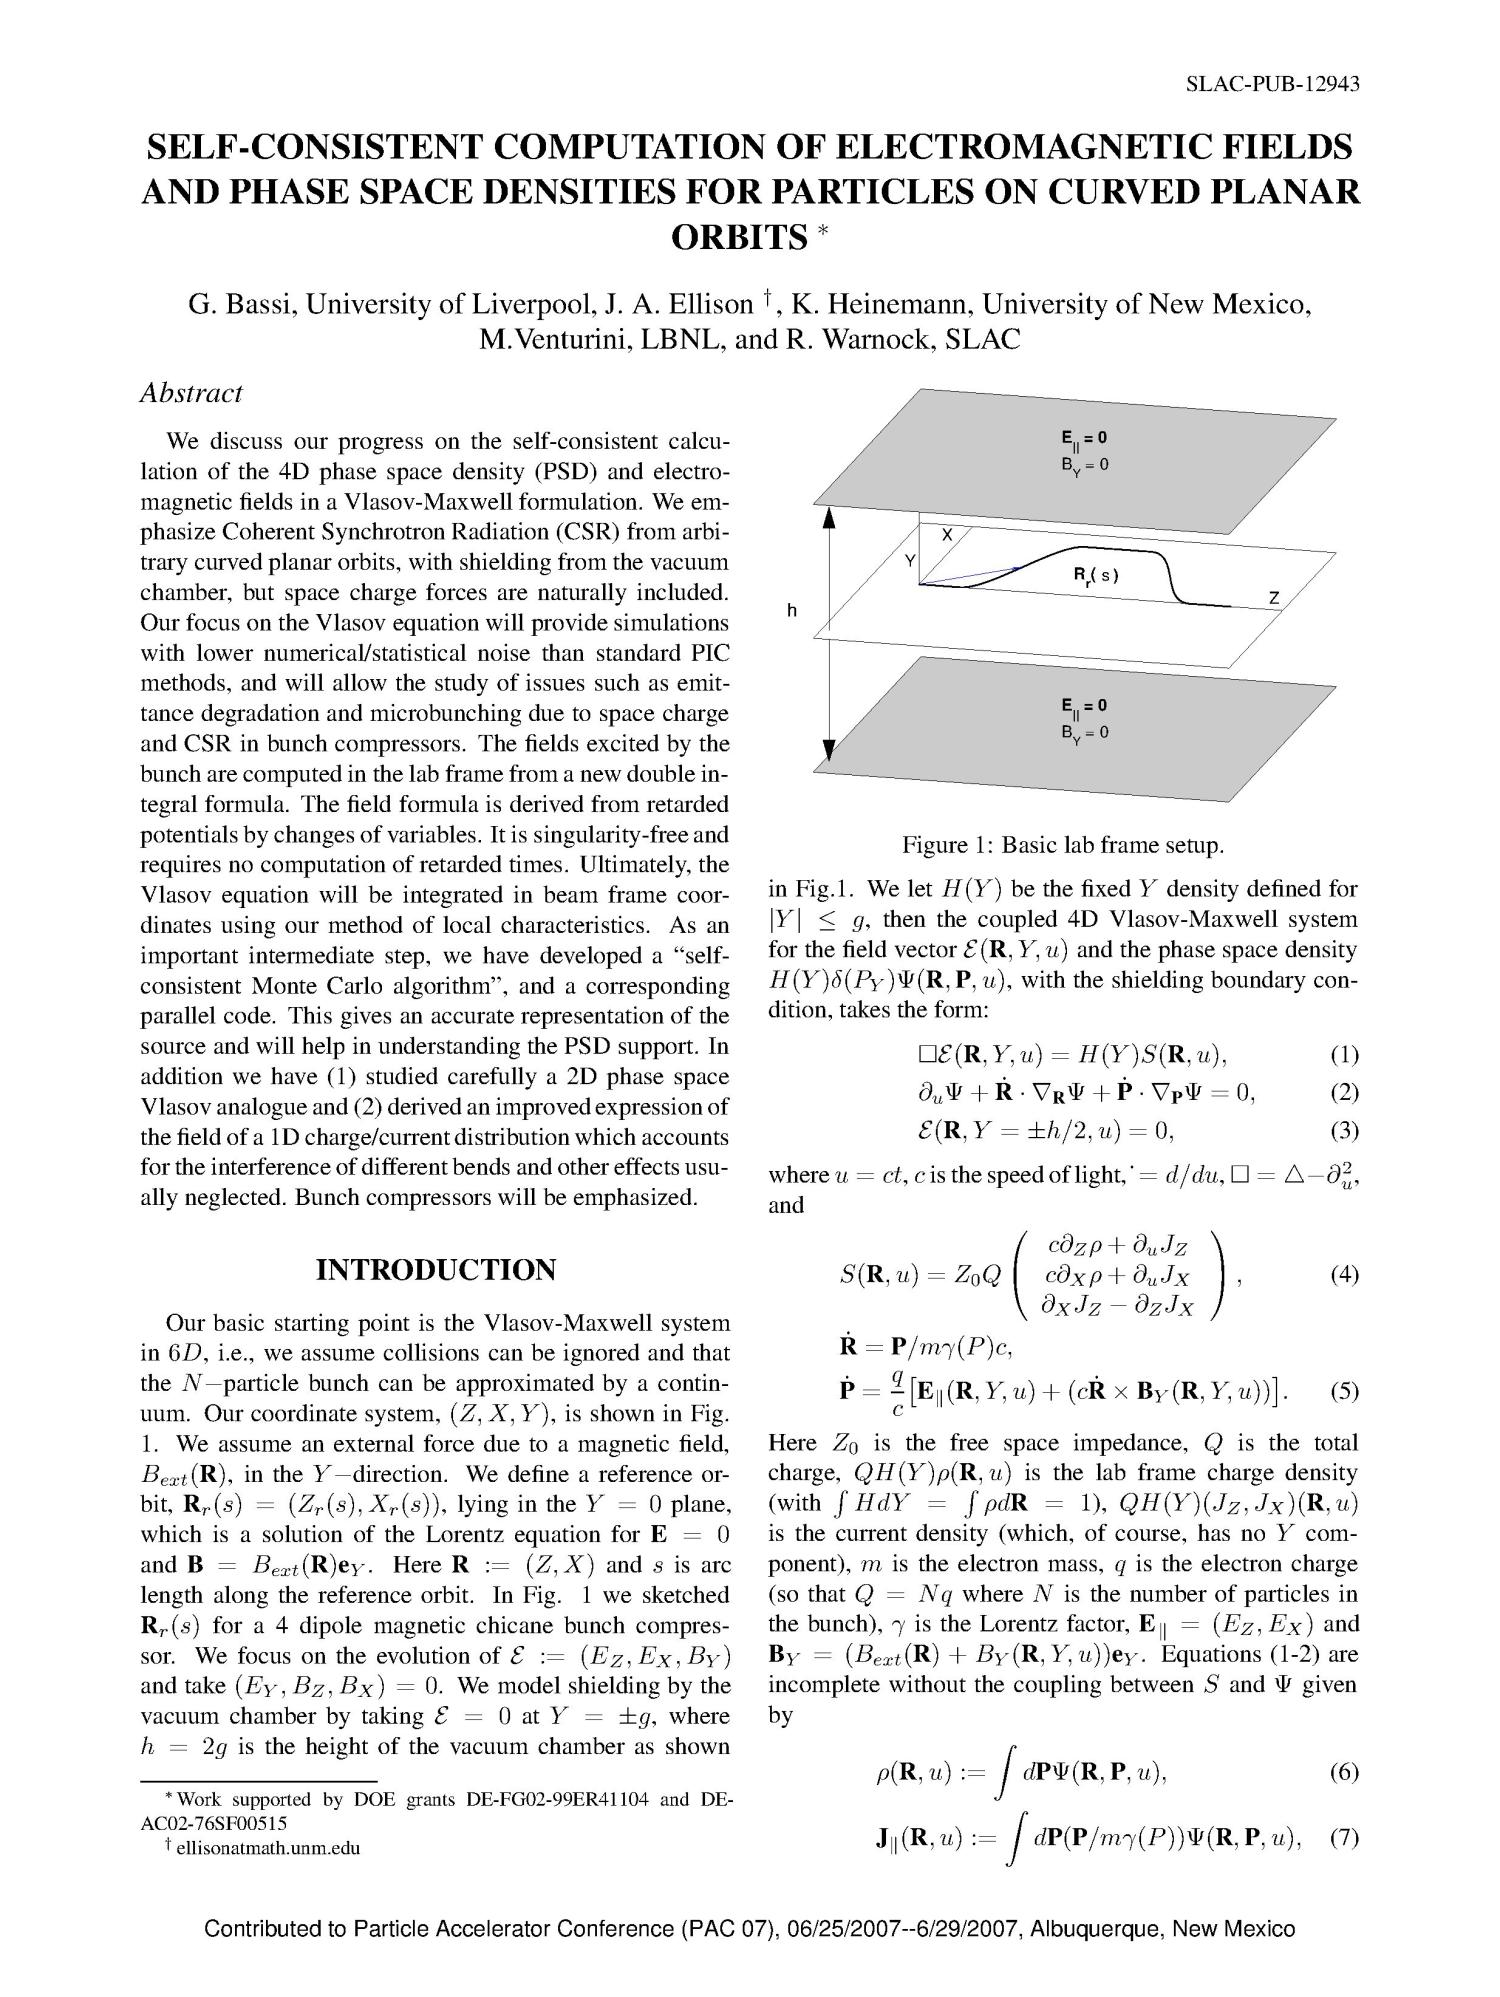 Self-Consistent Computation of Electromagnetic Fields and Phase Space Densities for Particles on Curved Planar Orbits                                                                                                      [Sequence #]: 1 of 5